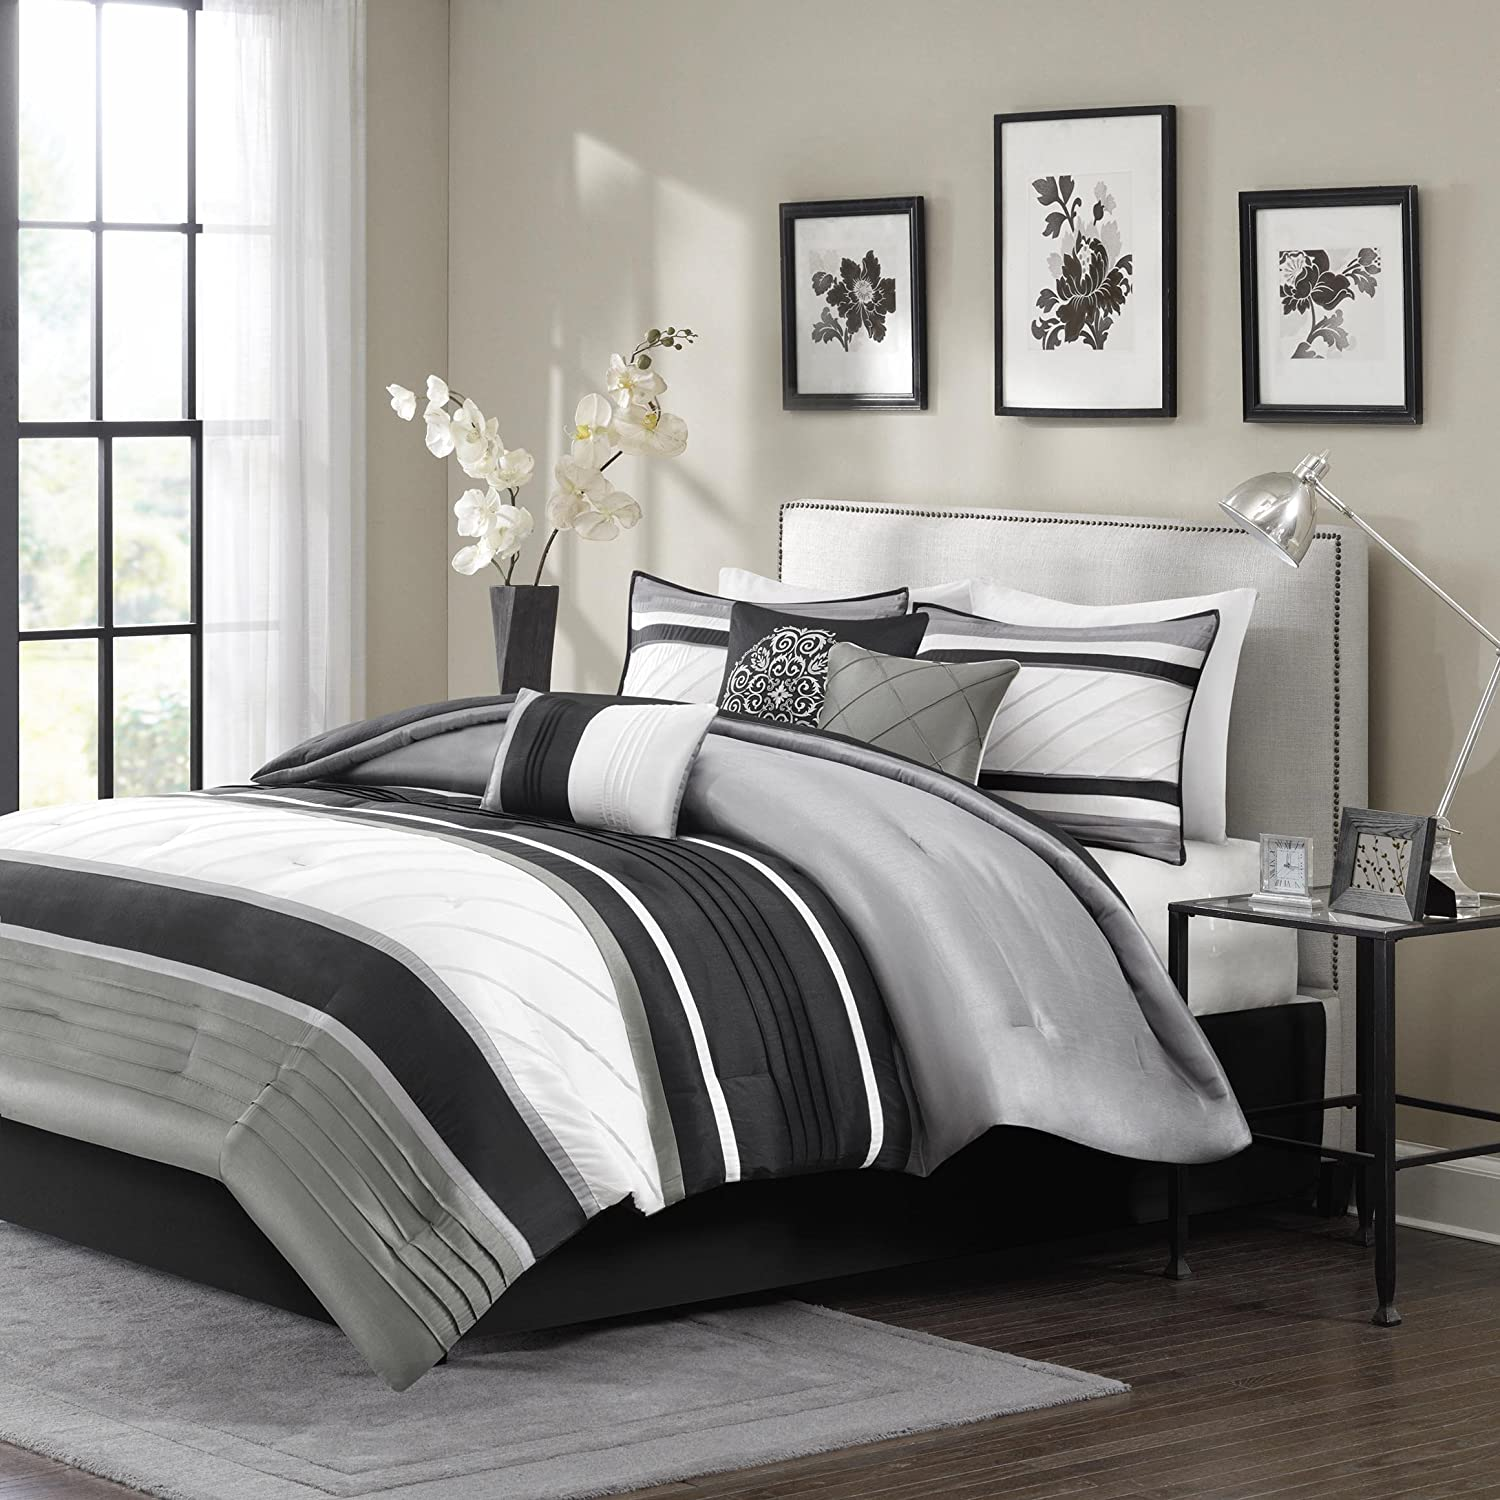 duck bedding comforter grey studio pintuck black queen sets piece river downton reversible set king esy p aqua